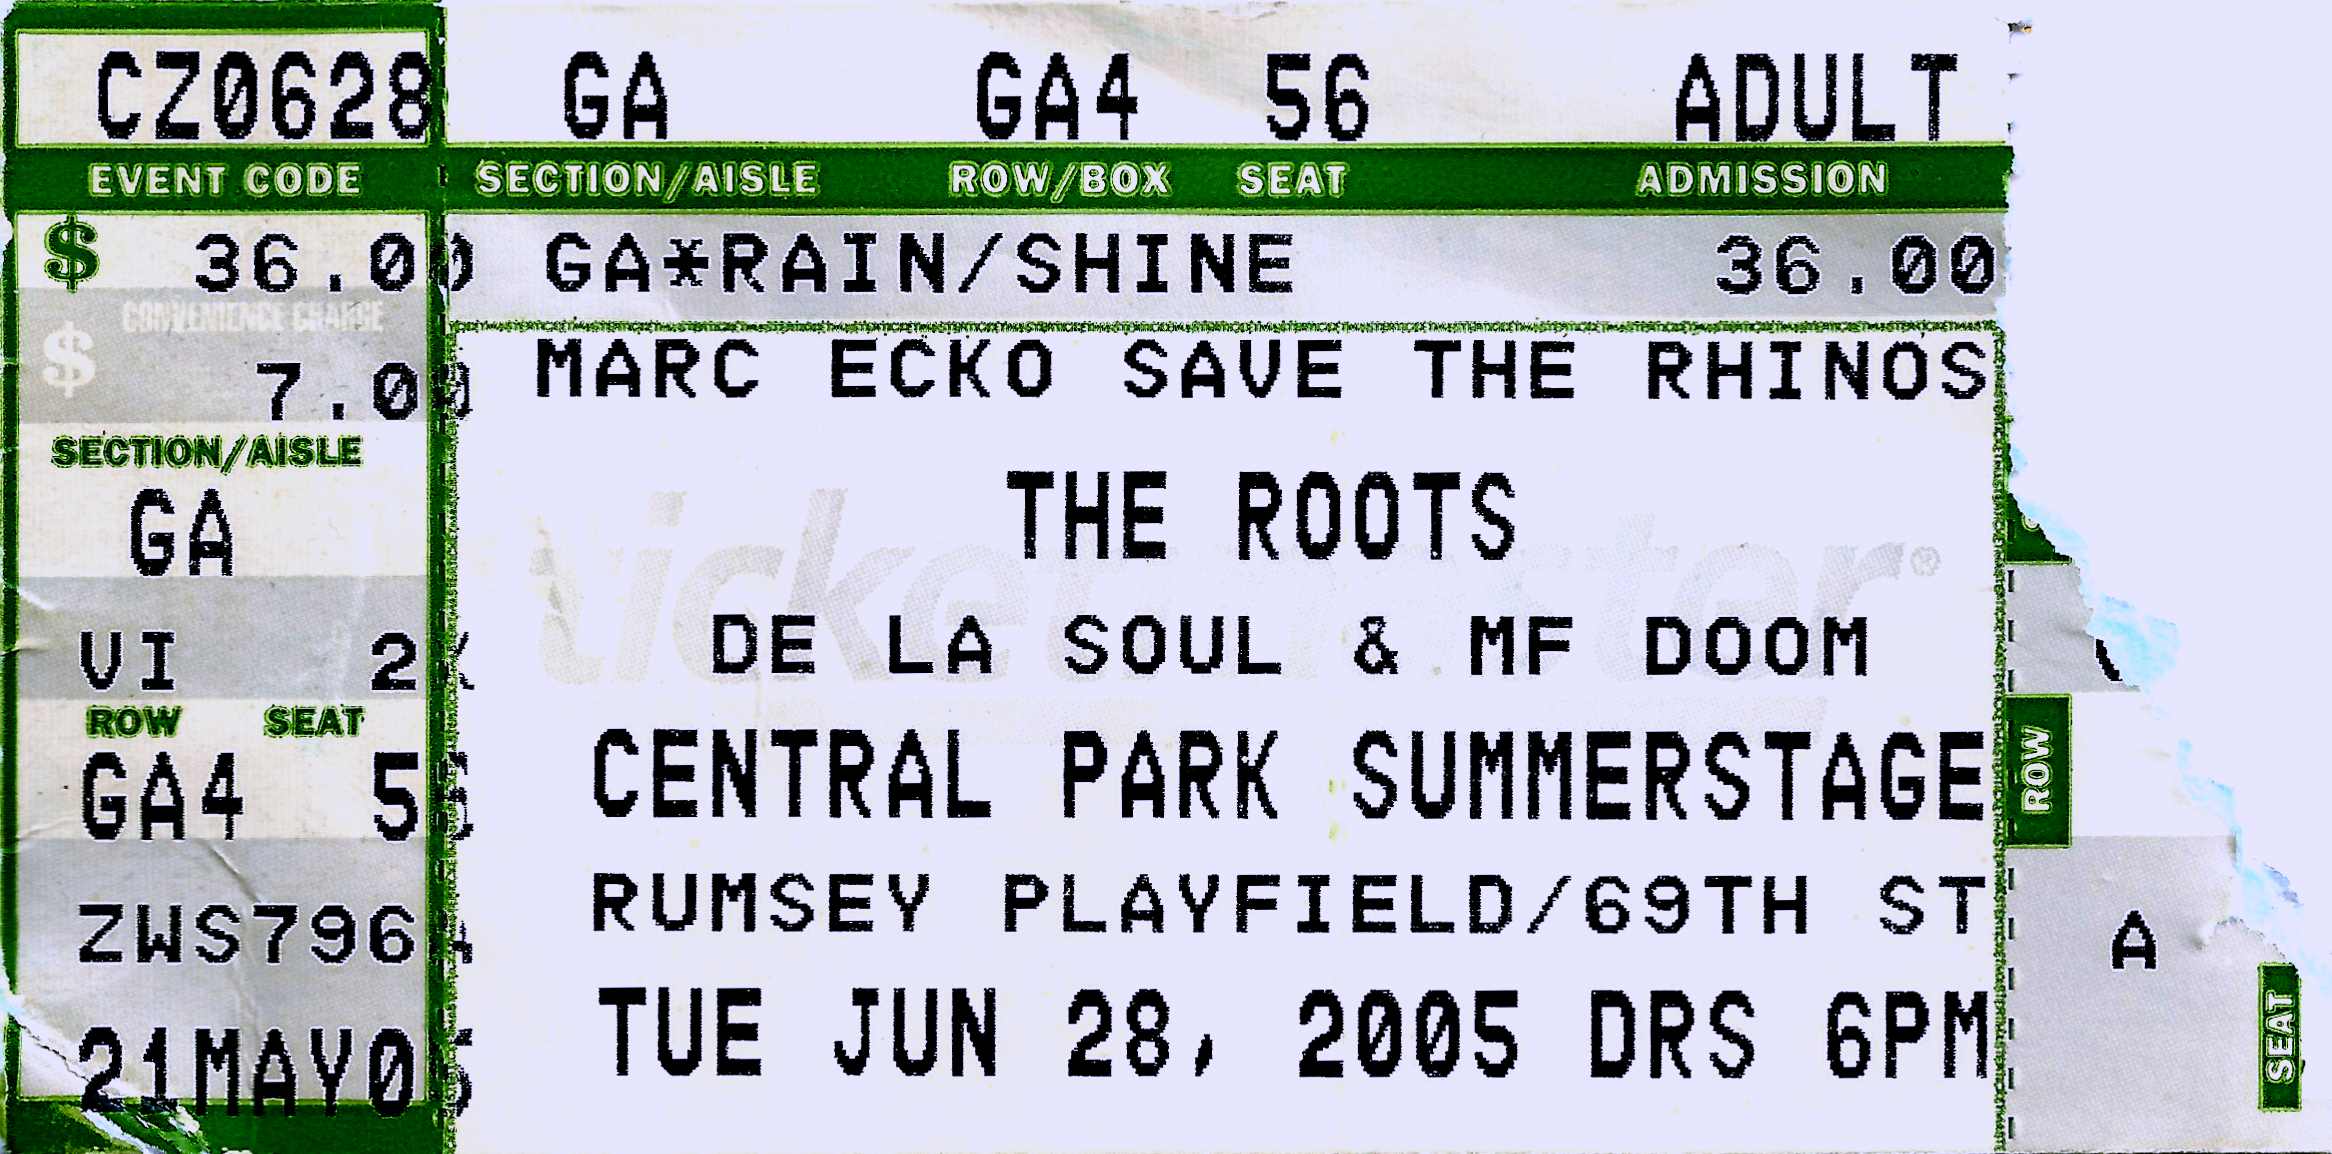 2005-06-28_theRoots-DeLaSoul_Rumsey